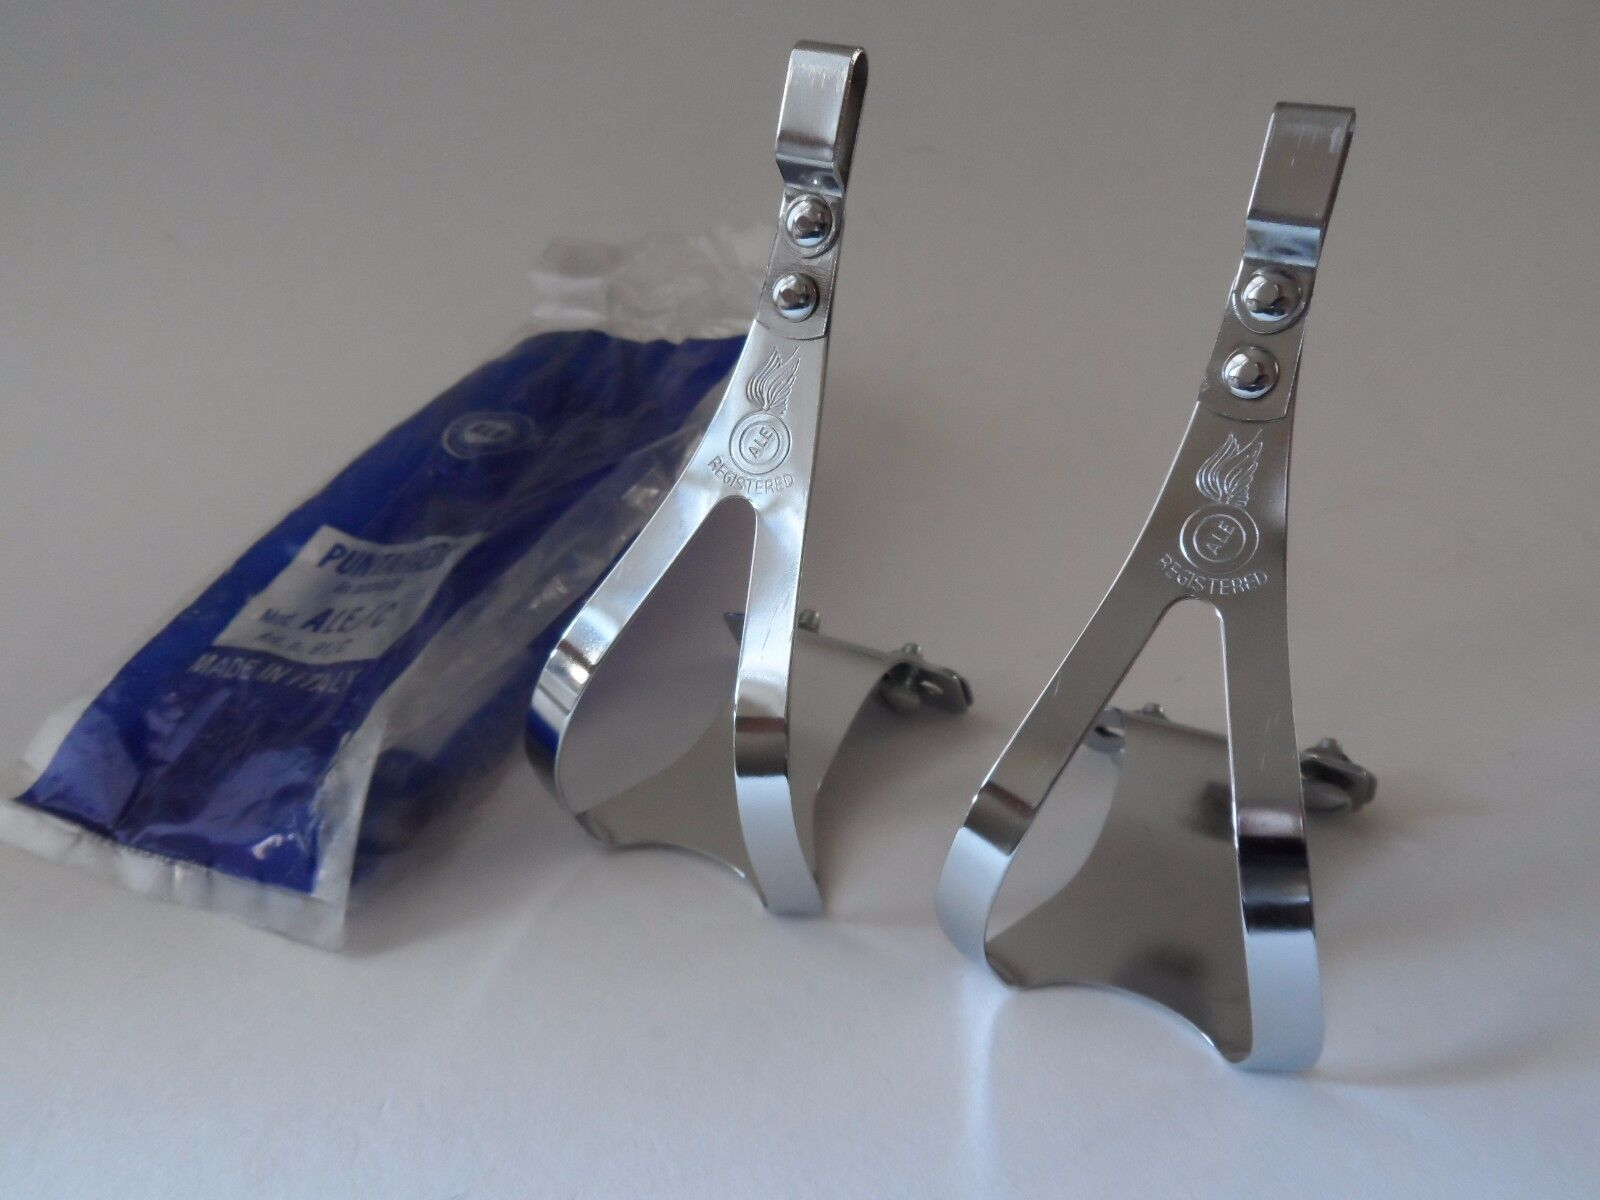 NOS Vintage 1970s ALE Torino Italian steel  pedal toe clips - Small  order now with big discount & free delivery